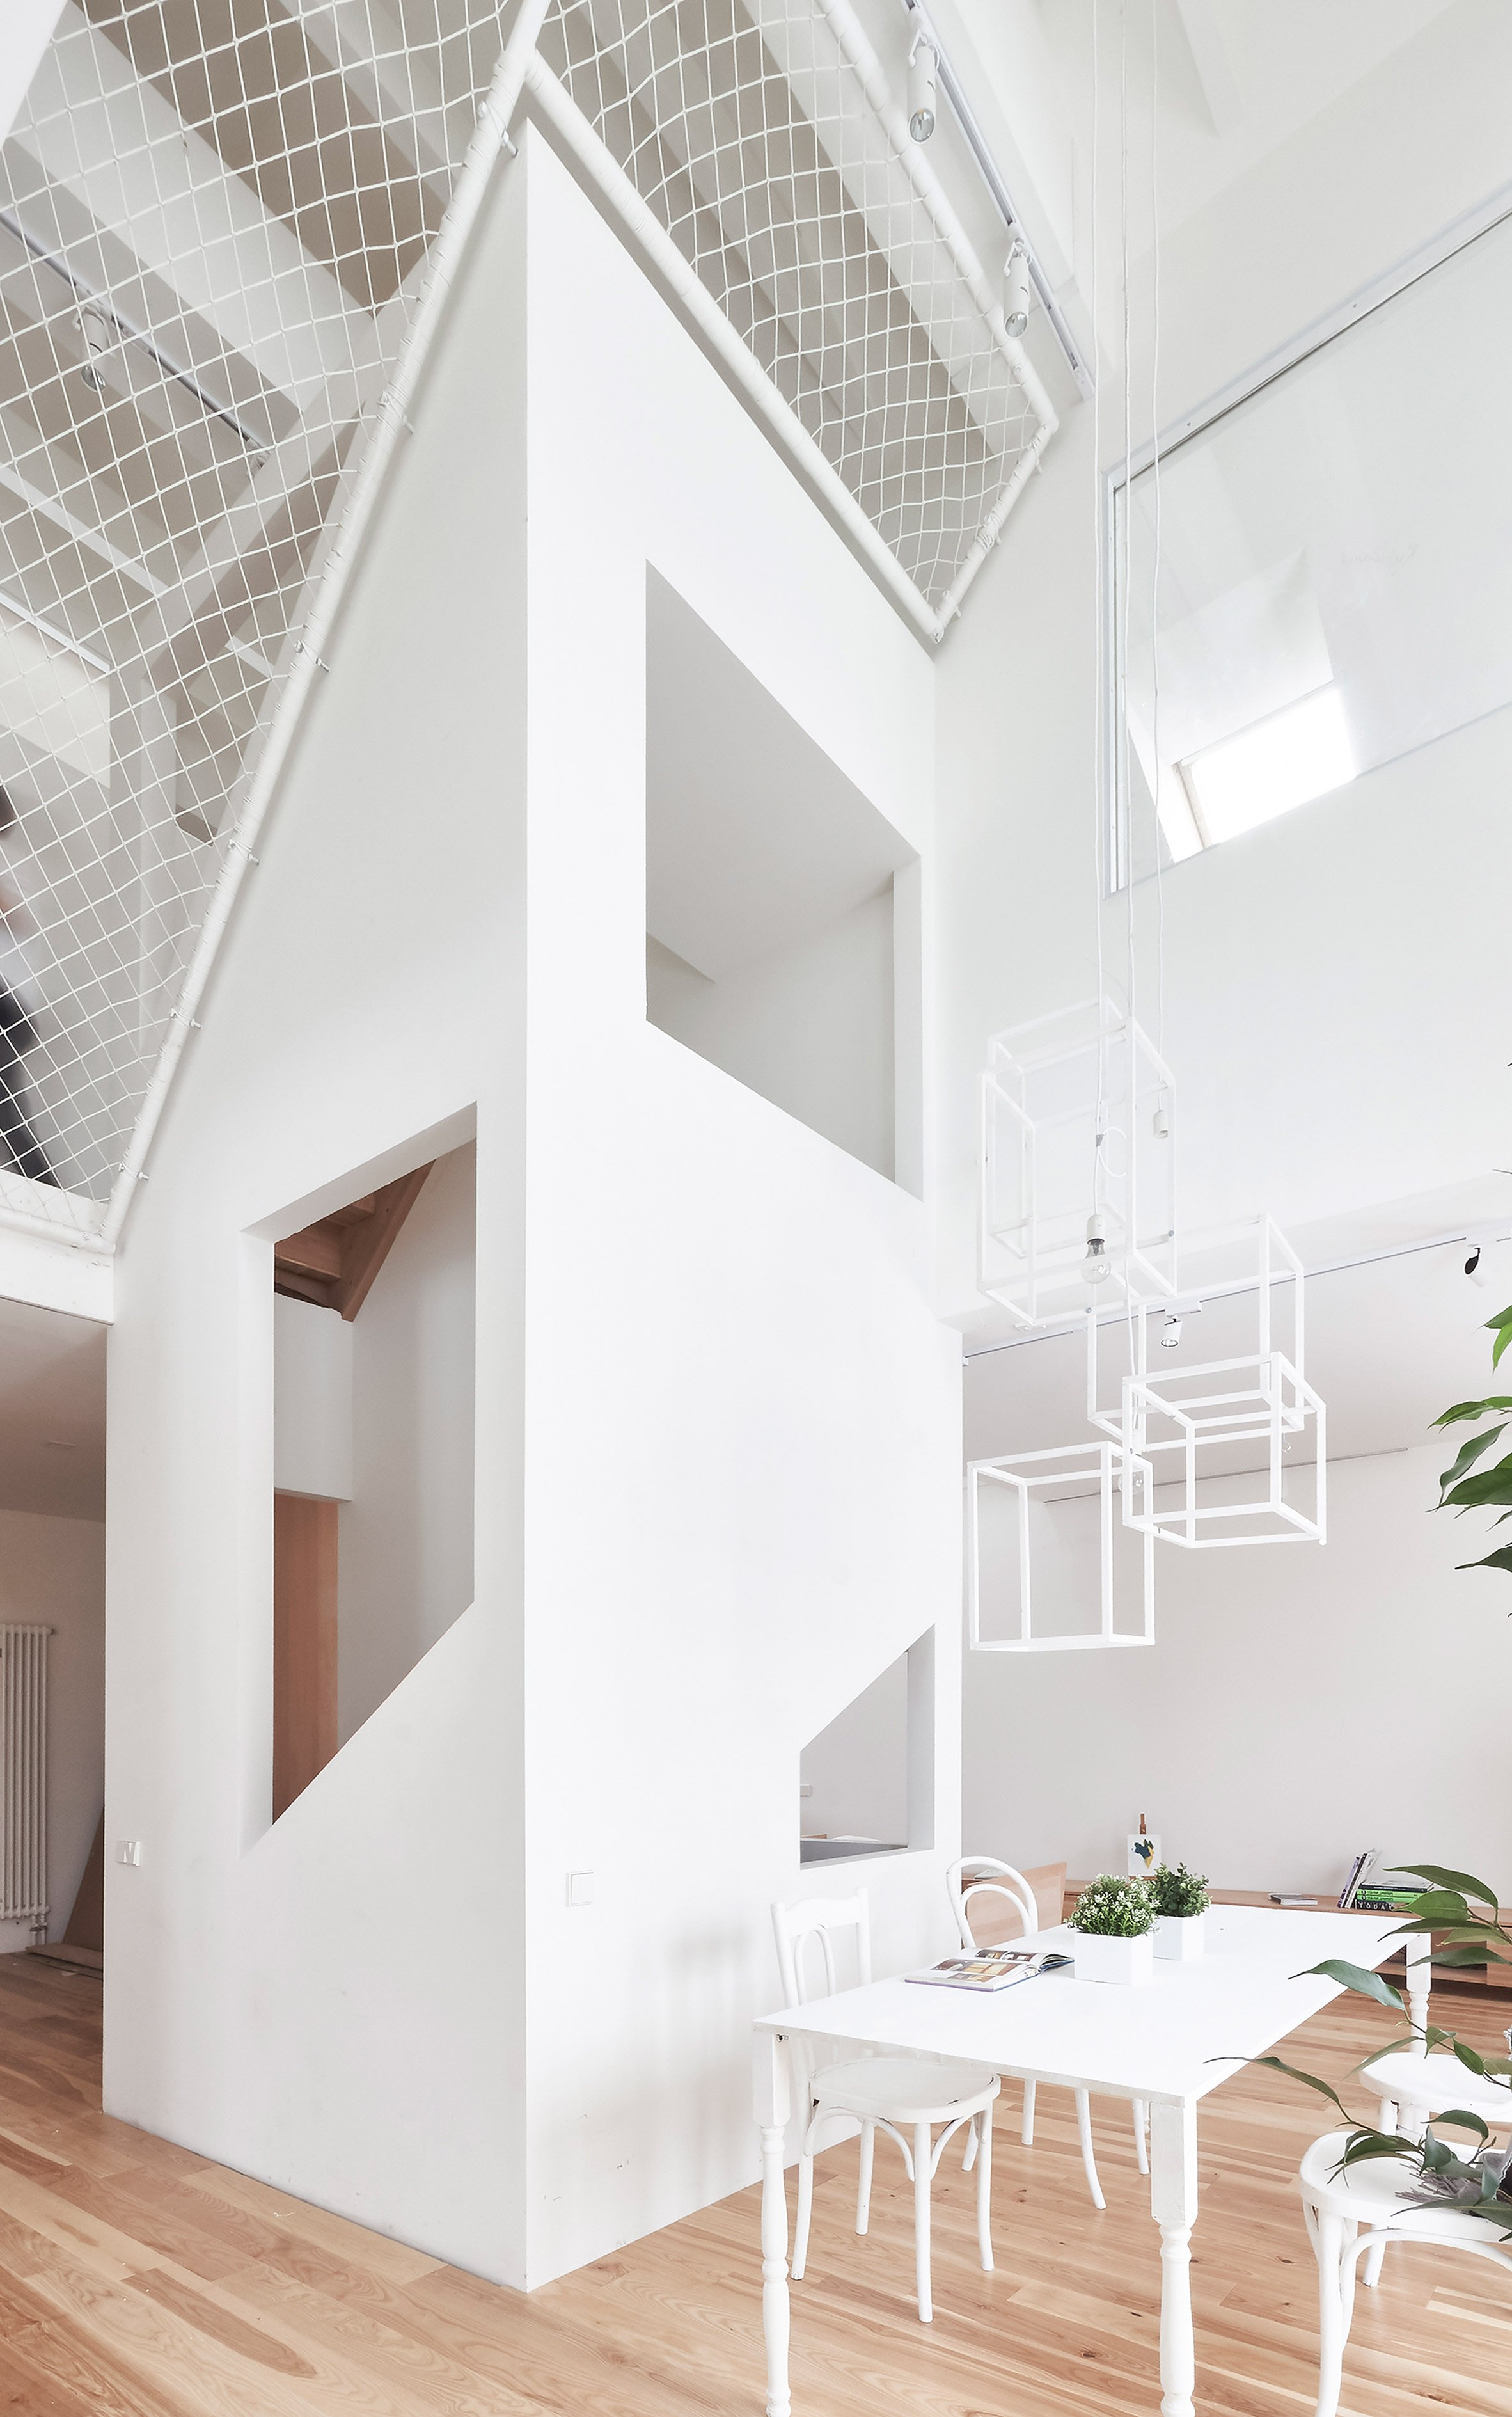 Ruetemple suspends netted areas in suburban Moscow home